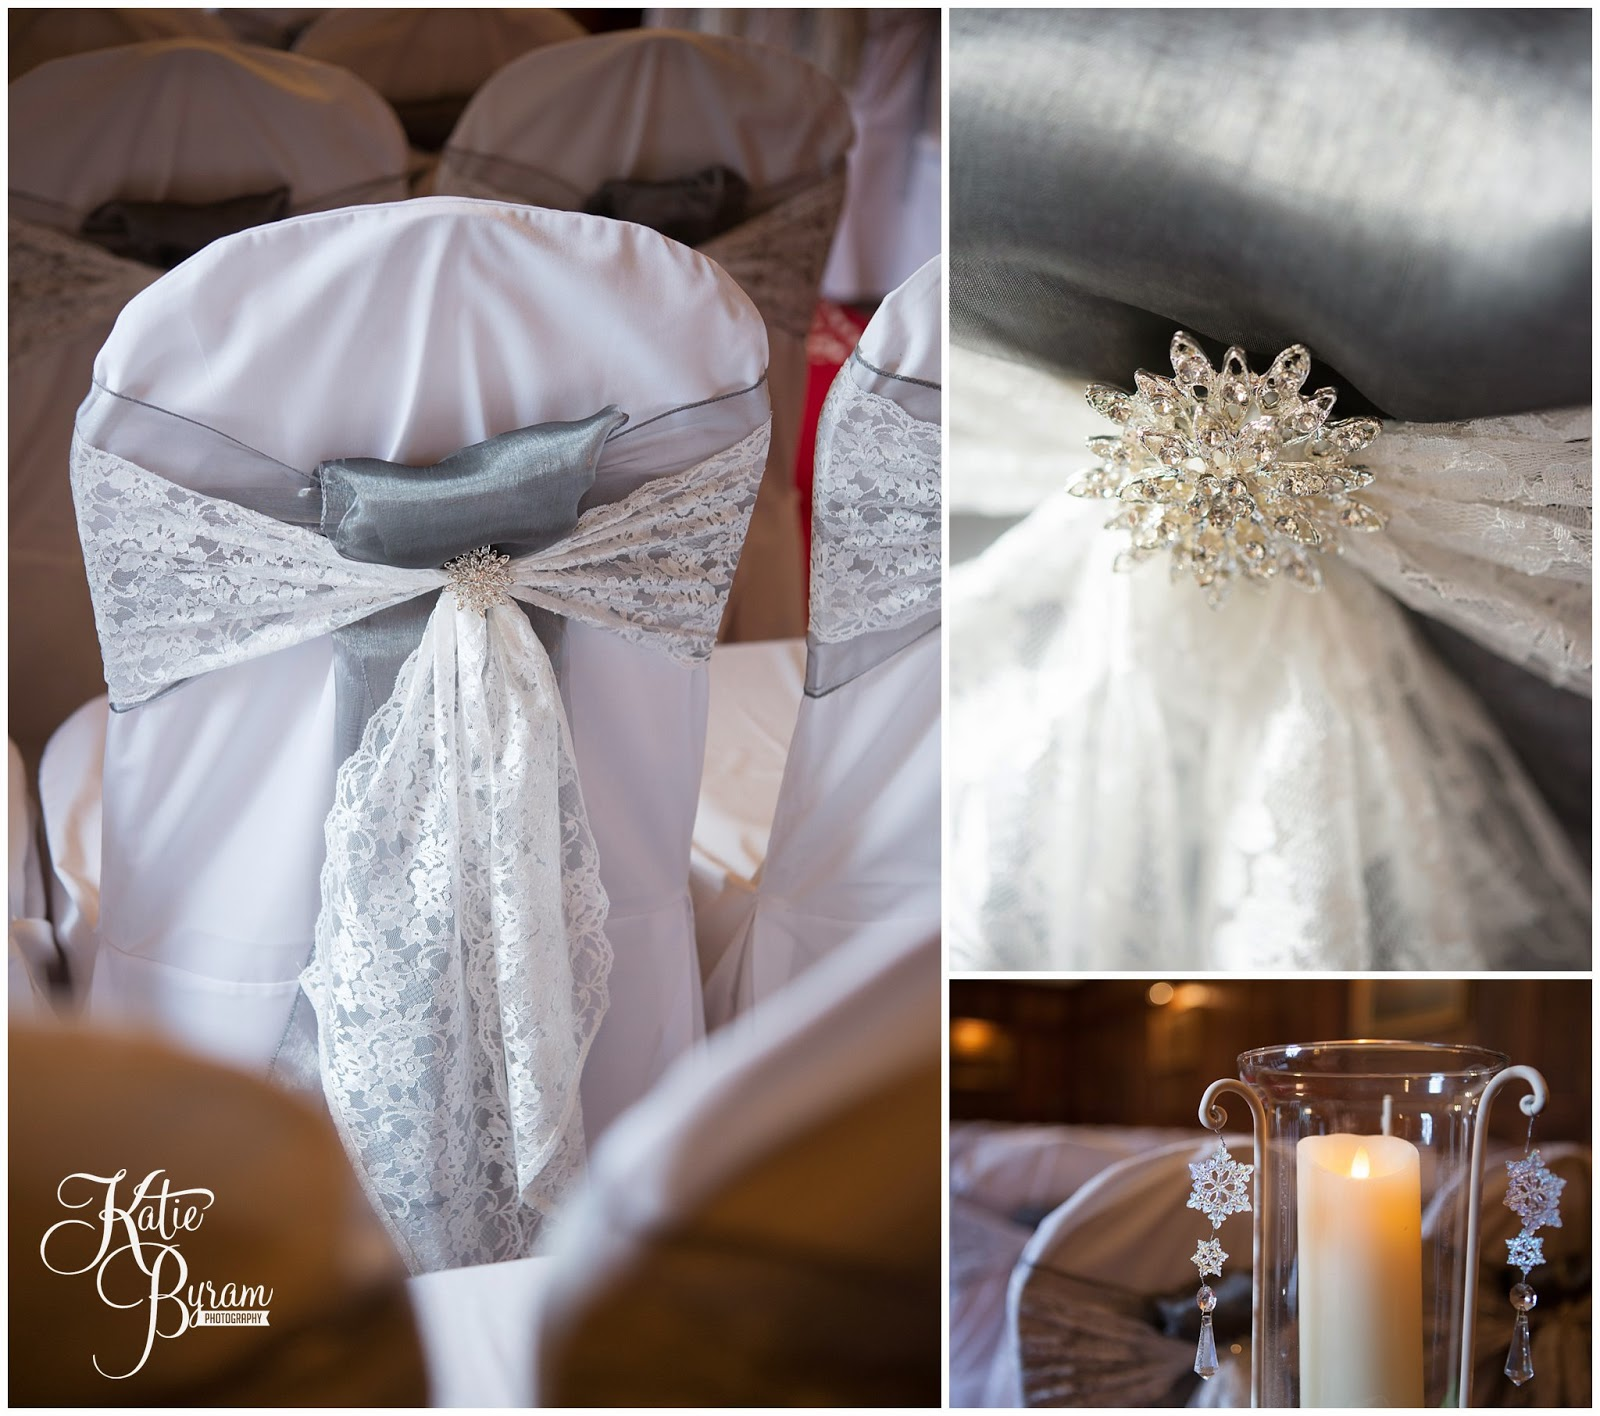 wedding chair covers, winter wedding theme, ellingham hall wedding, alnwick wedding, katie byram photography, ellingham hall, mia sposa bridal, wedding venues north east, newcastle wedding photographer, ellingham, alnwick treehouse wedding, adam prest flowers, winter wedding, winter wedding theme, by wendy stationery, quirky wedding photography, northumberland wedding, northumberland, dani.mua, dani make up artist, lisa cameron hair